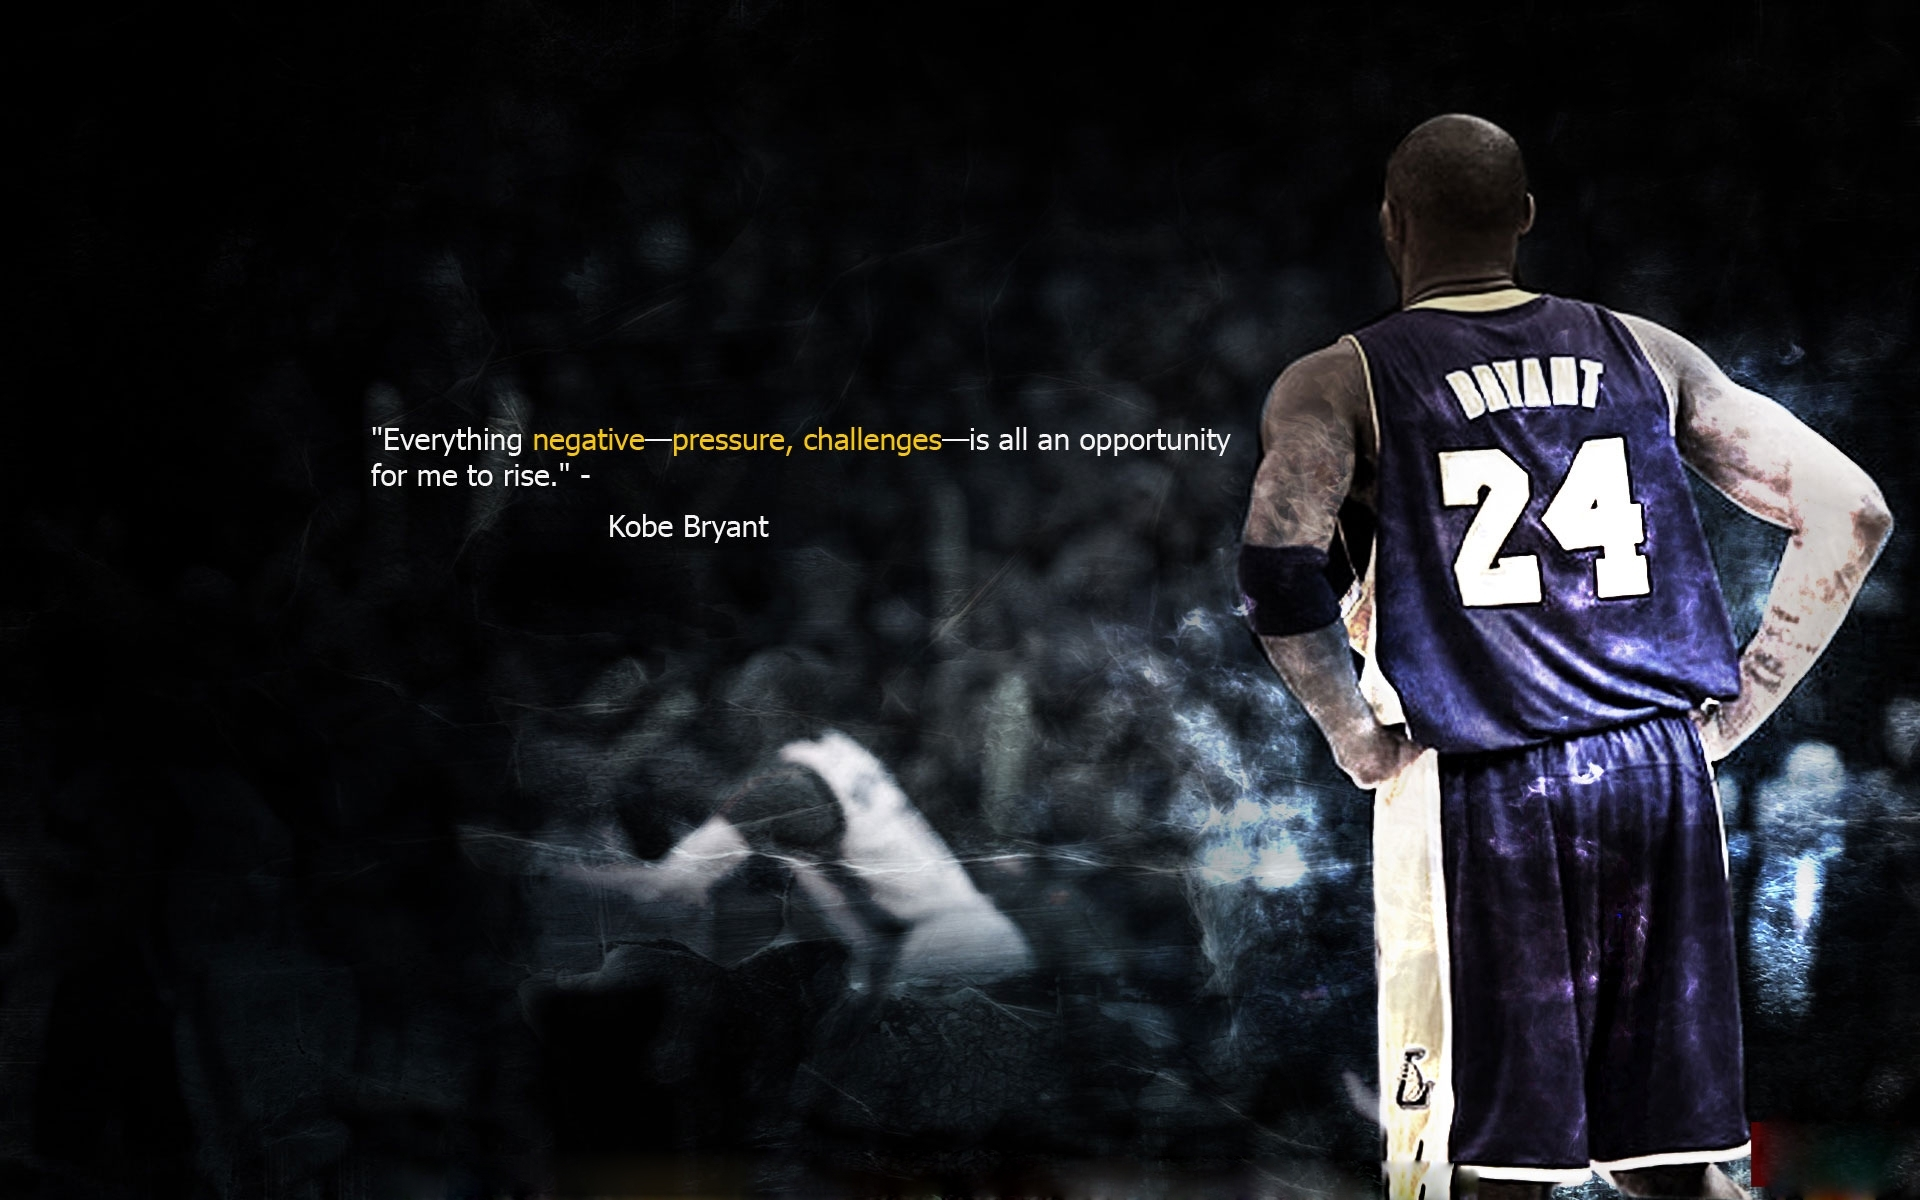 kobe-bryant-wallpapers-hd-background | wallpaper.wiki